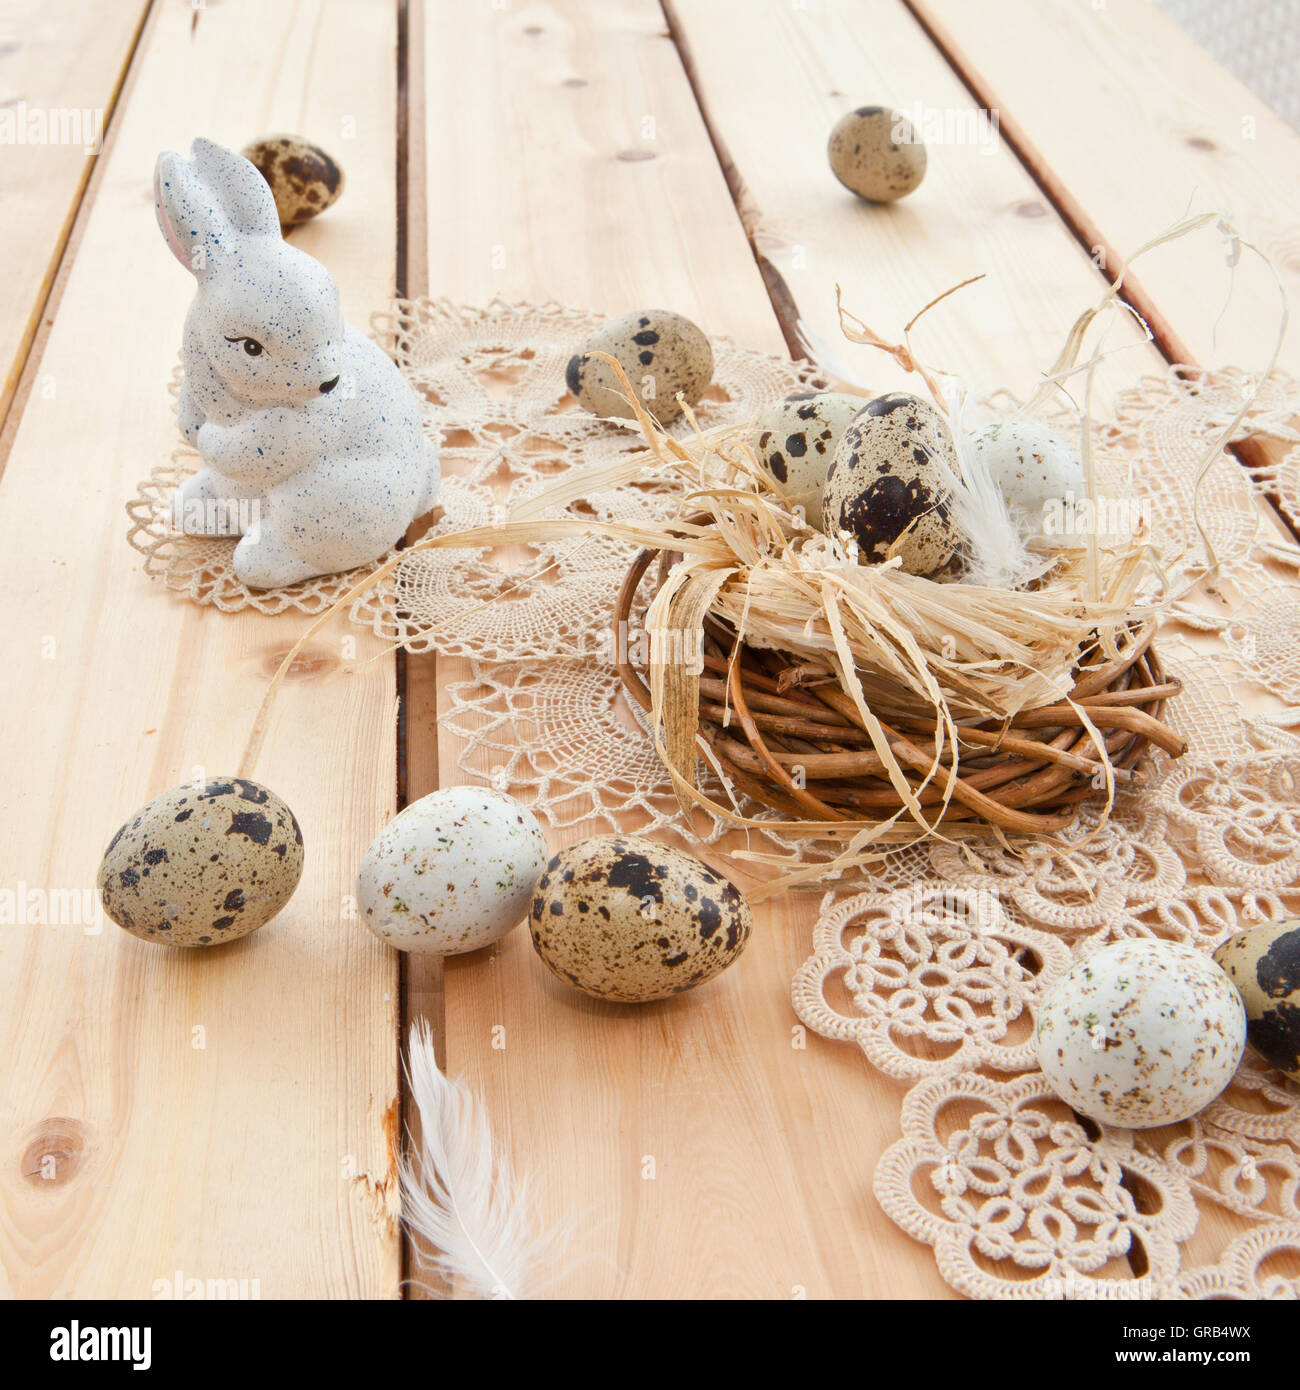 Rustic Easter Nest - Stock Image